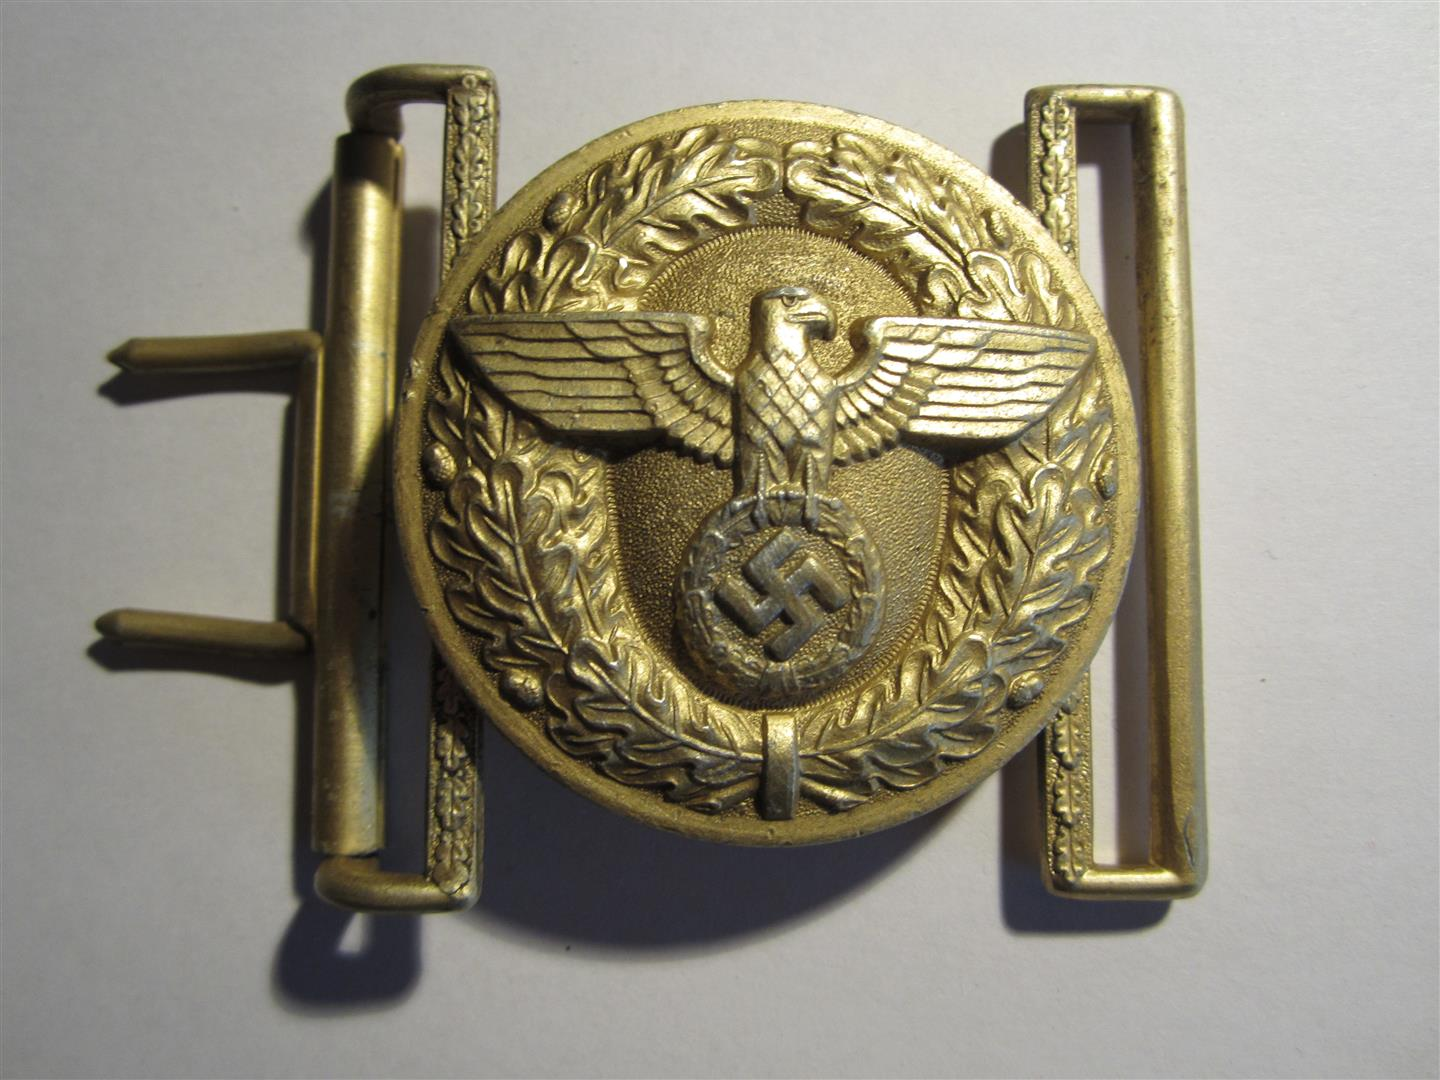 WW2 NSDAP Gauleiter's Belt Buckle